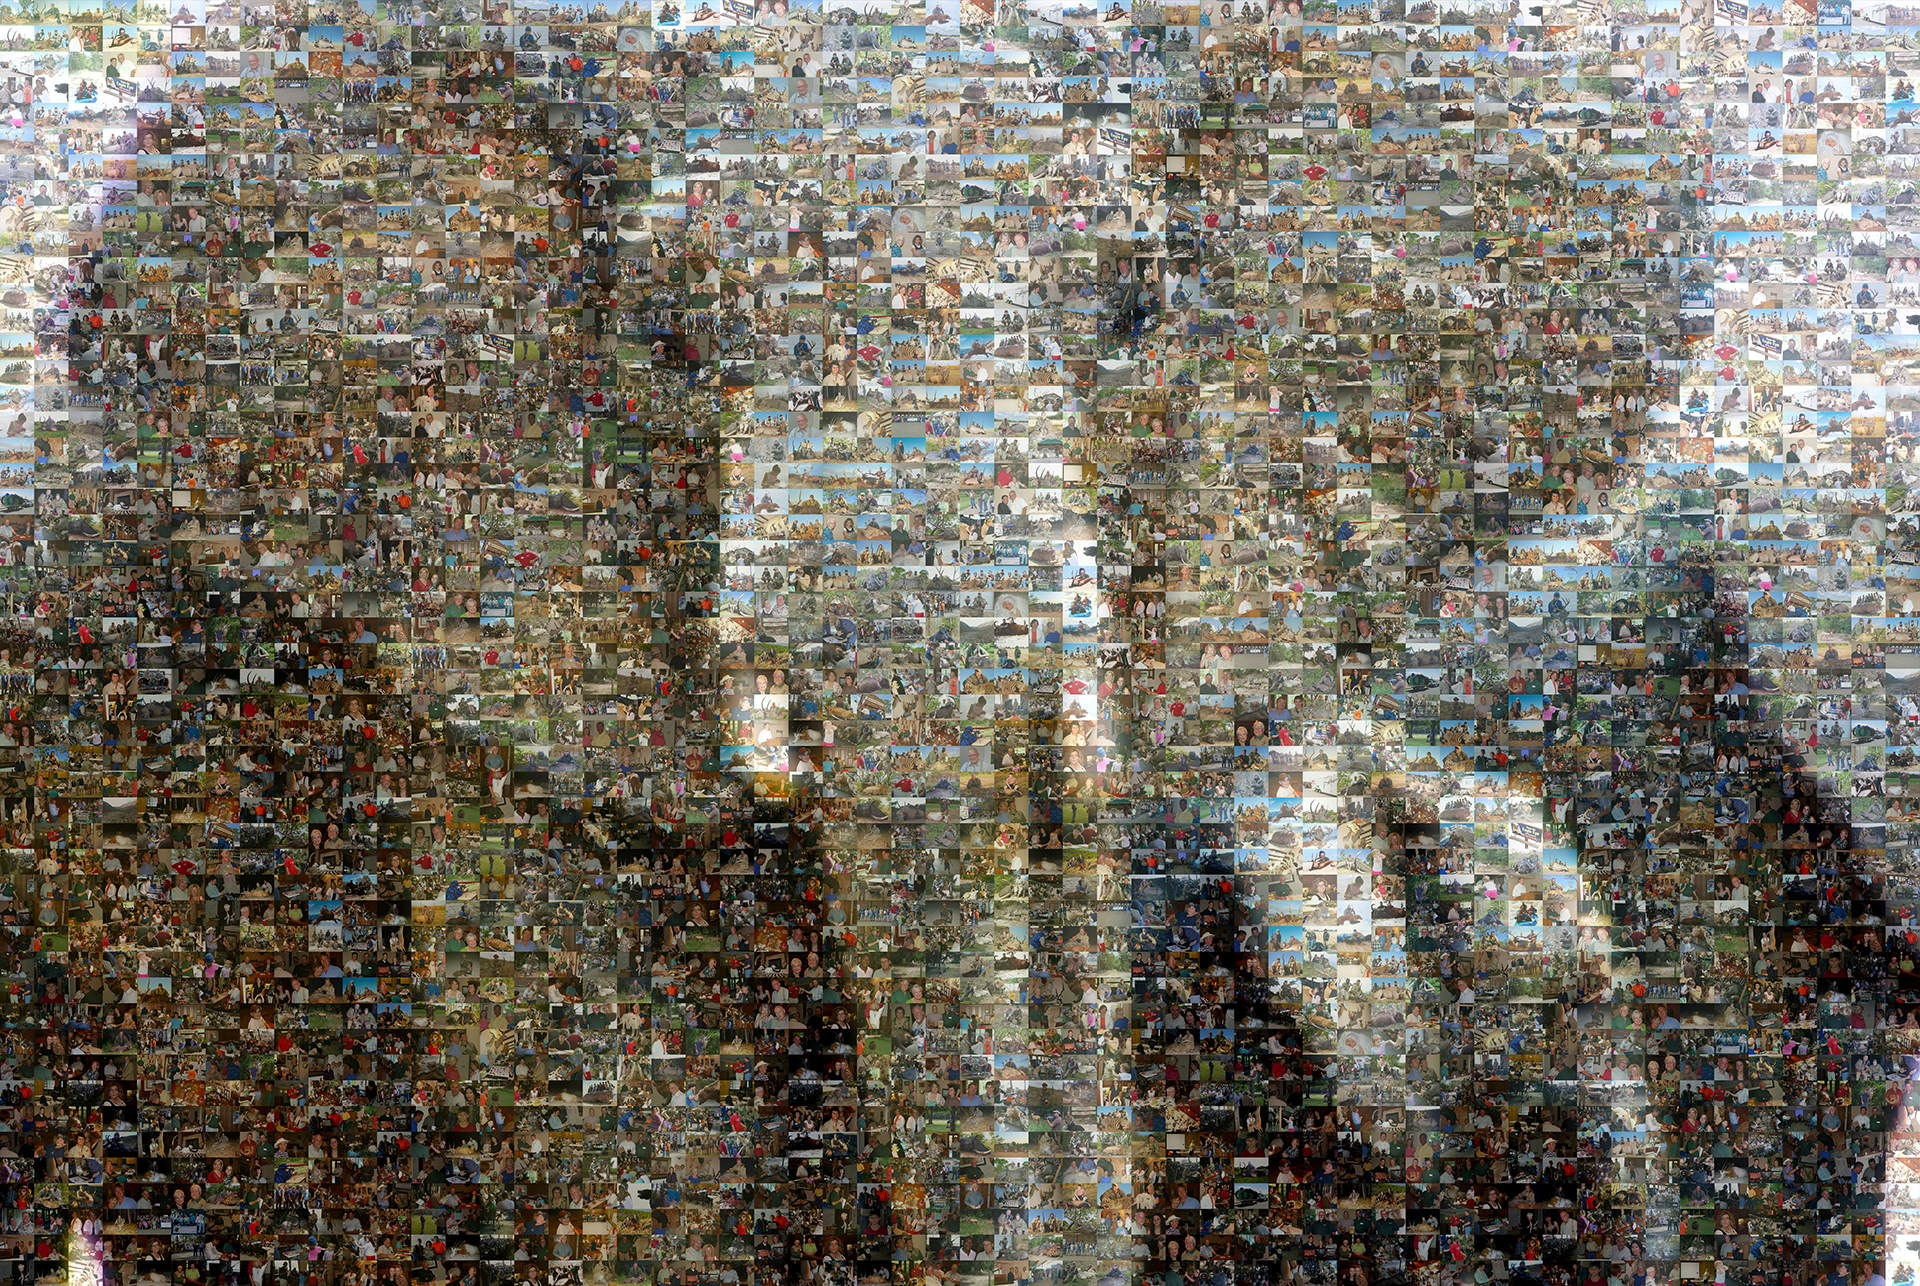 photo mosaic created using 401 hunting photos